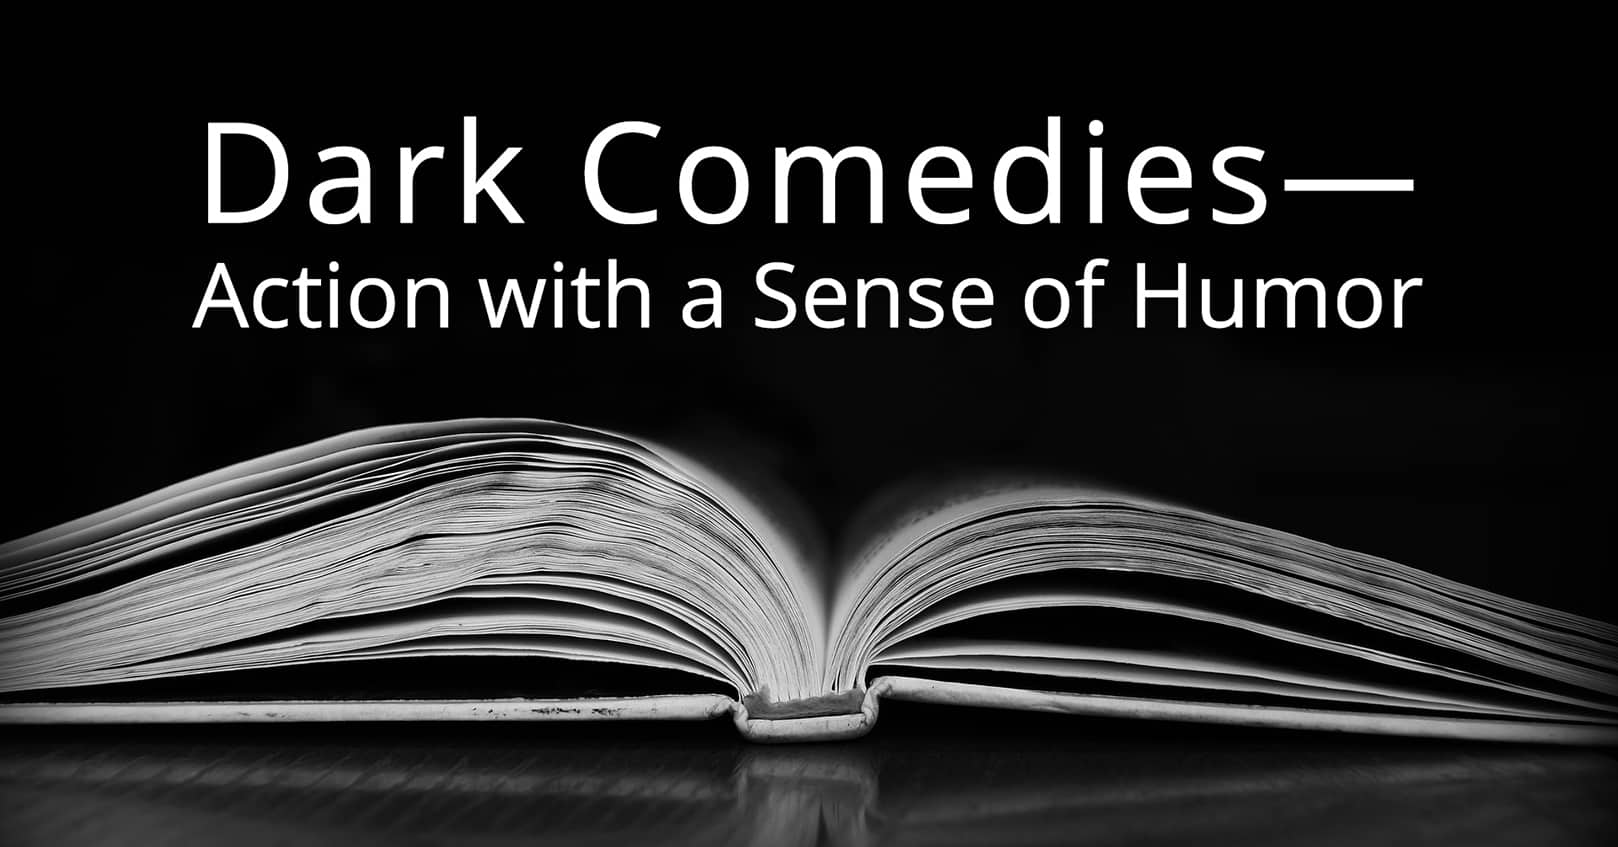 dark comedies - action with a sense of humor